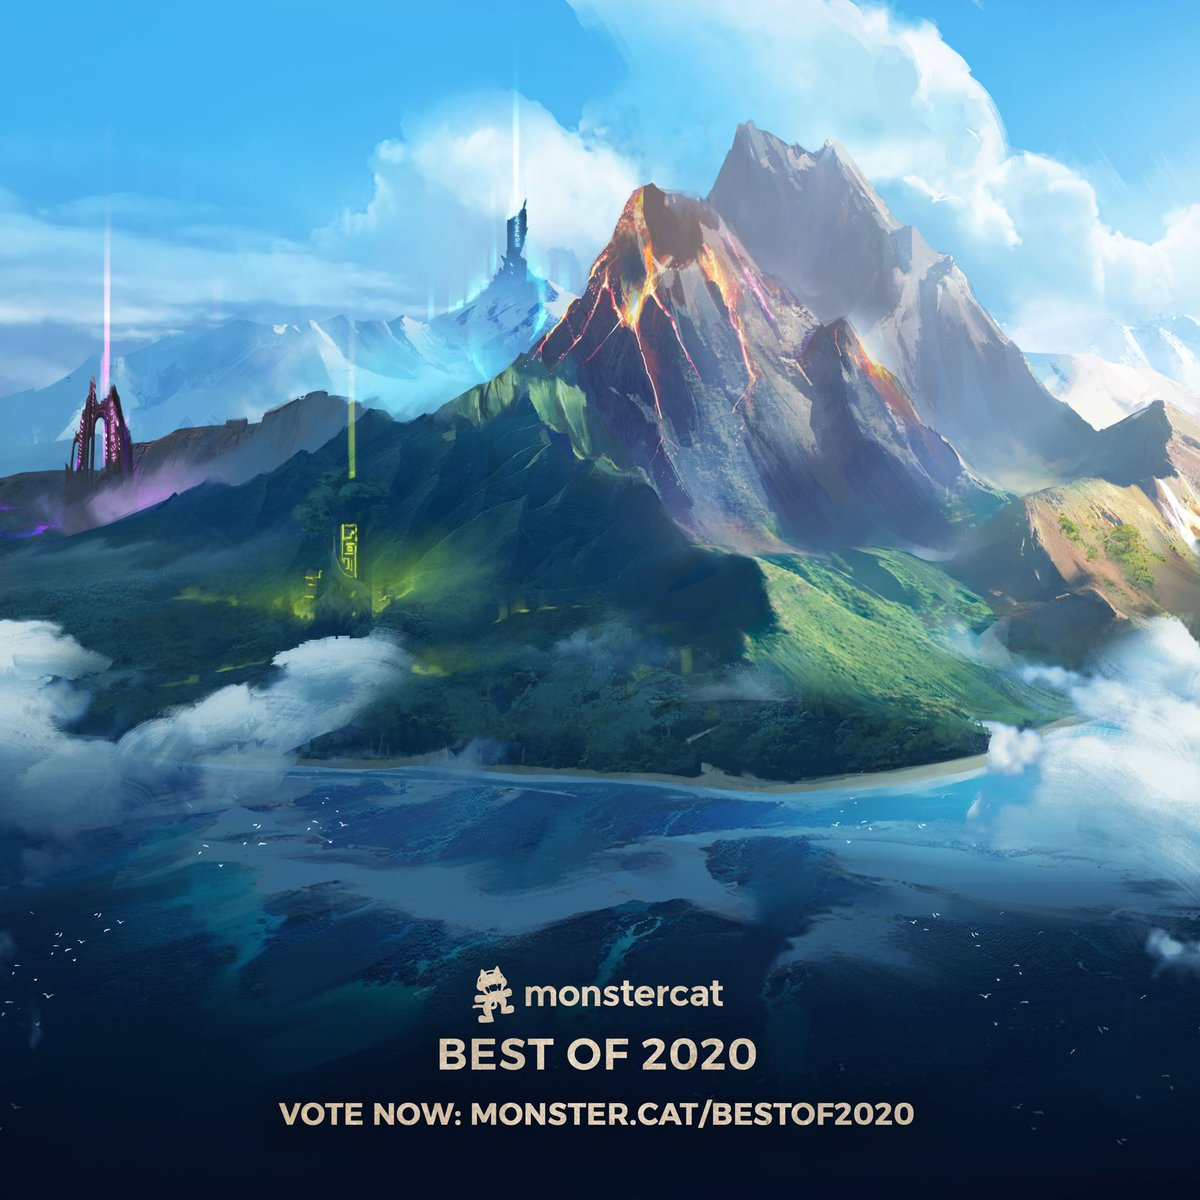 vote All I Need for @Monstercat #McatBestof2020 🥳